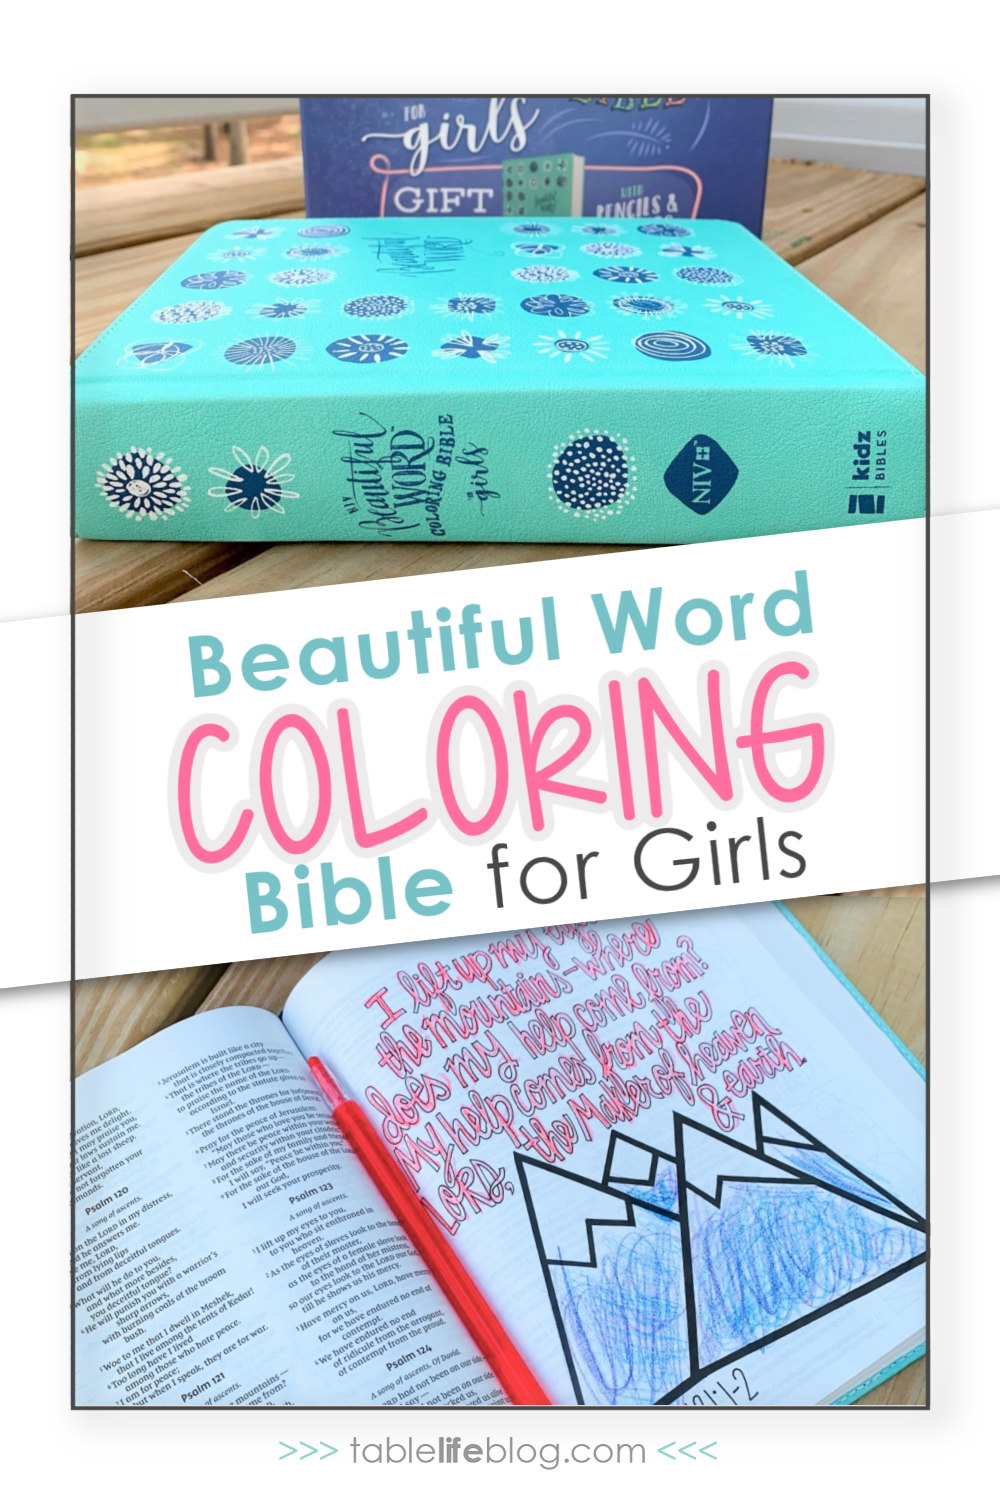 Looking for a Bible to give to a special girl in your life? Here's what you need to know about the Beautiful Word Coloring Bible for girls.